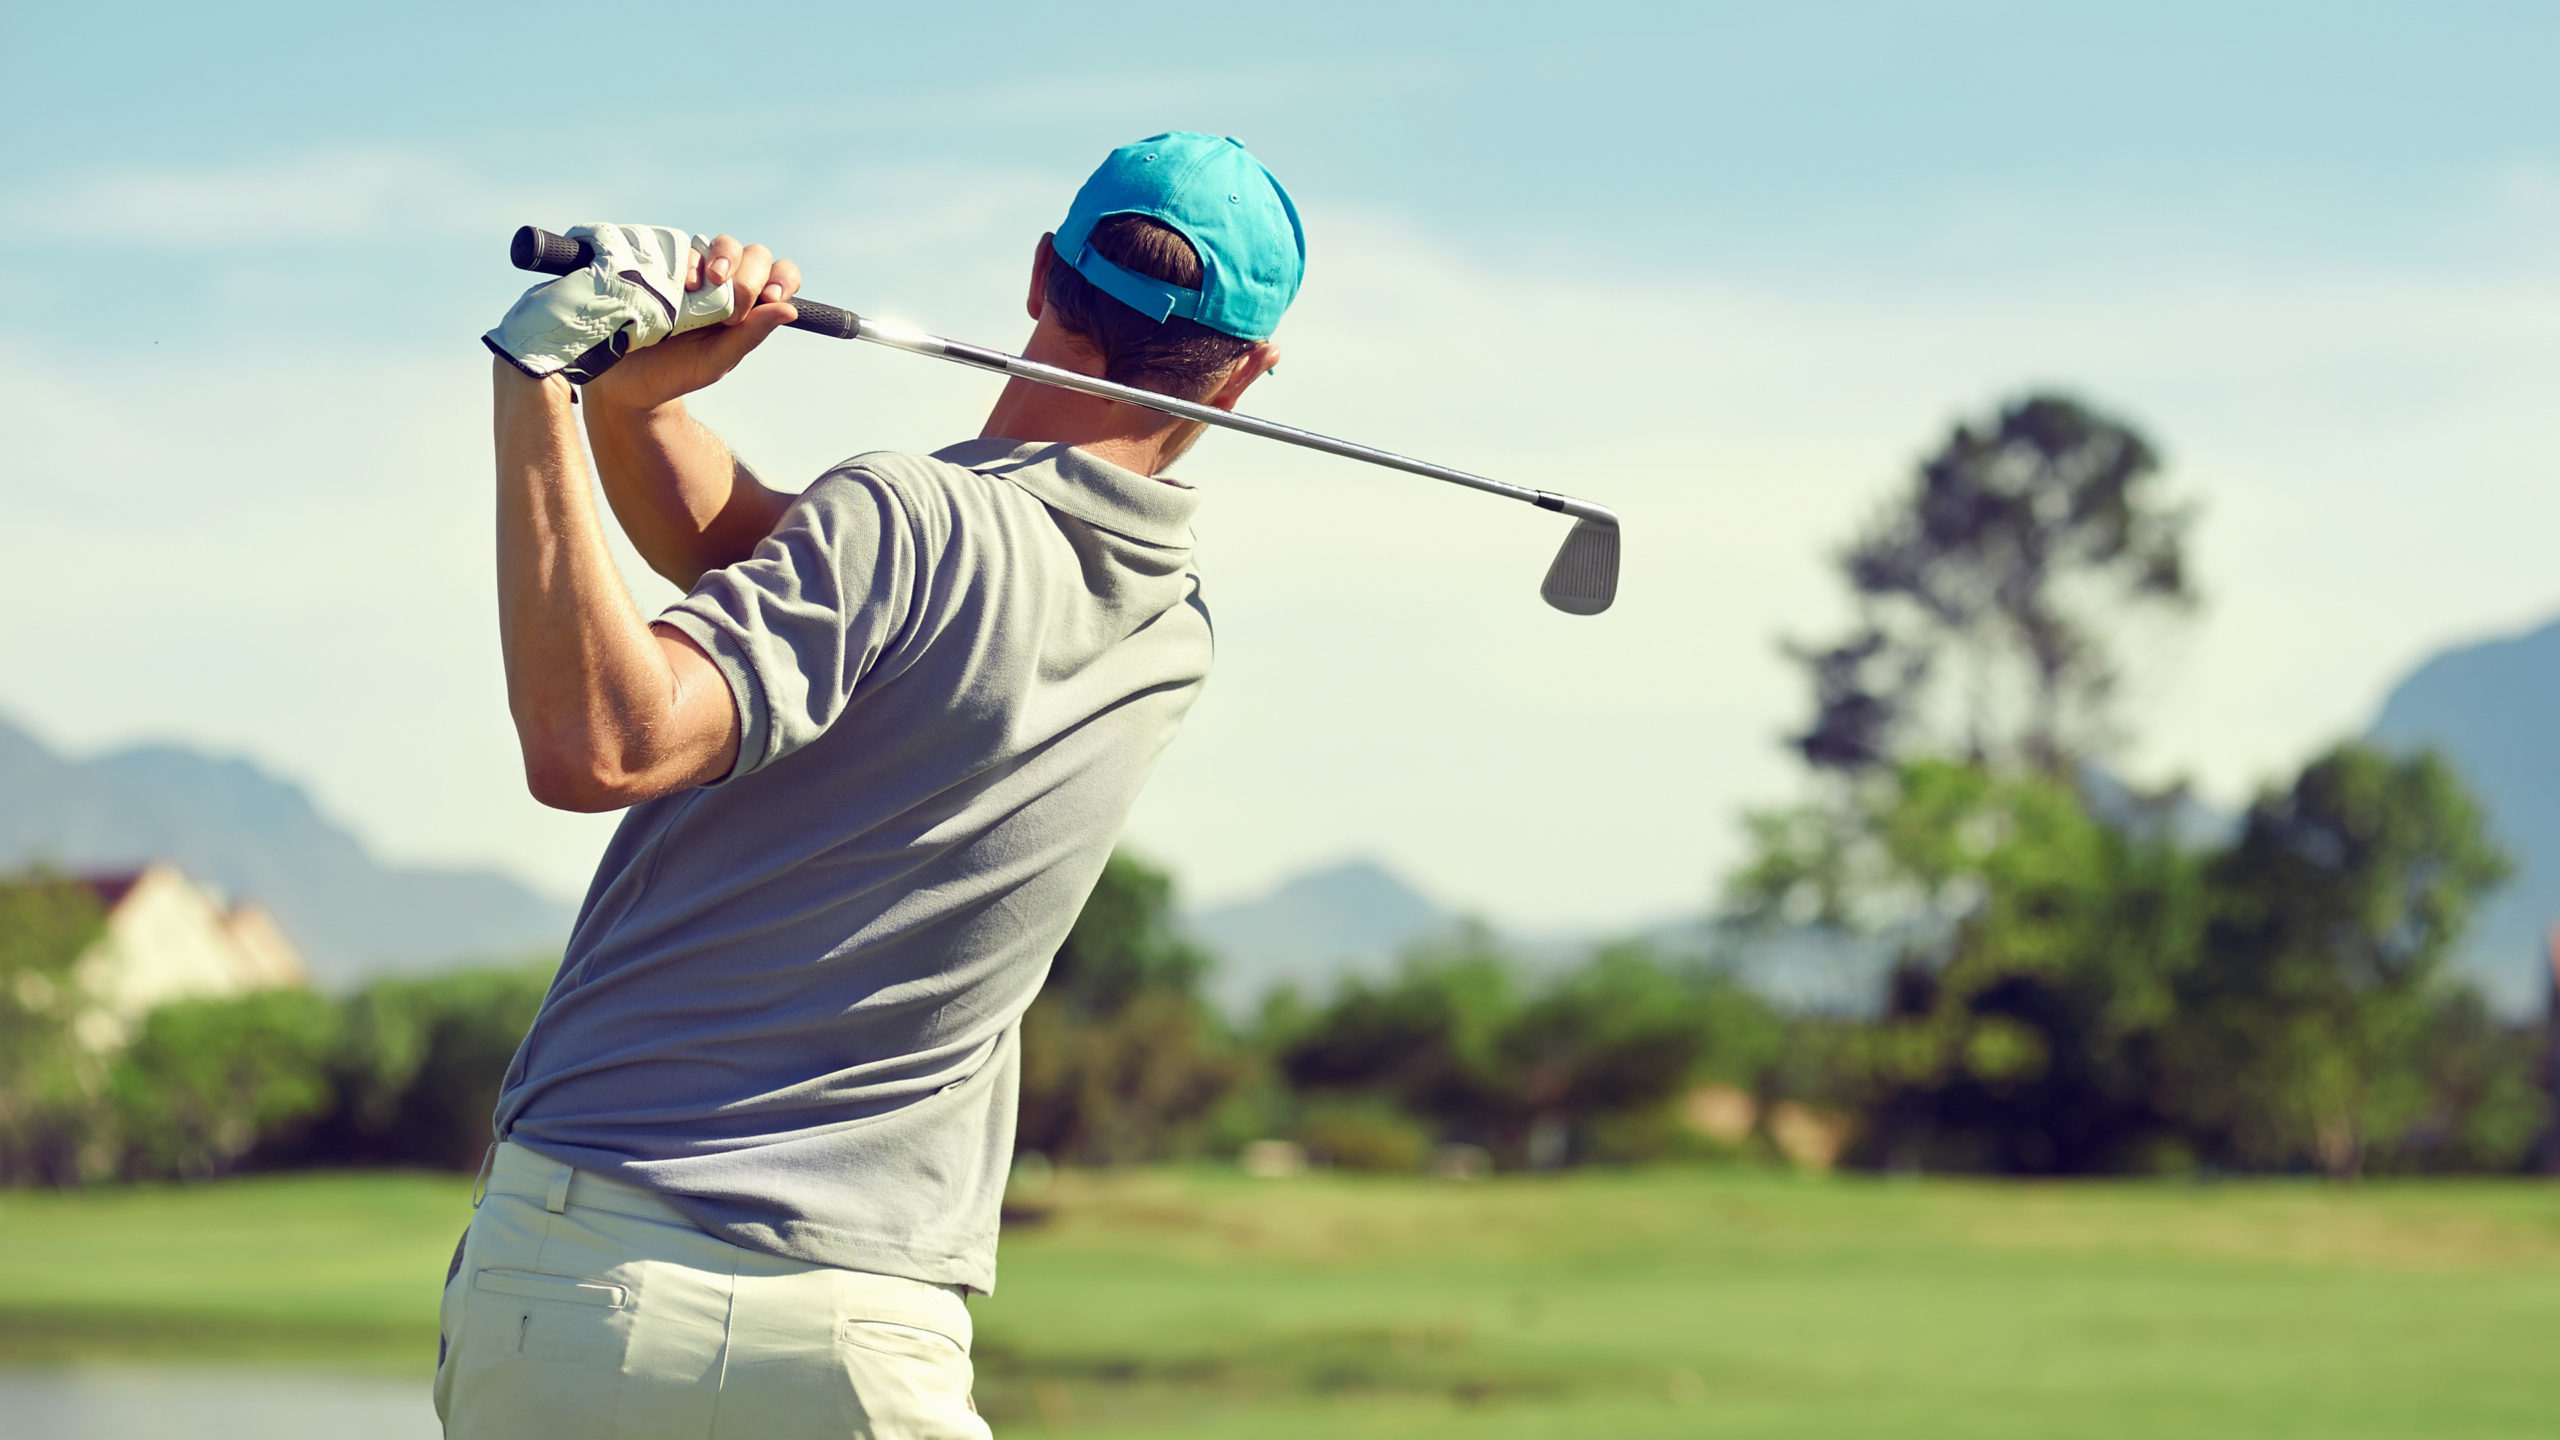 Waist up view of man in golf backswing looking down the fairway